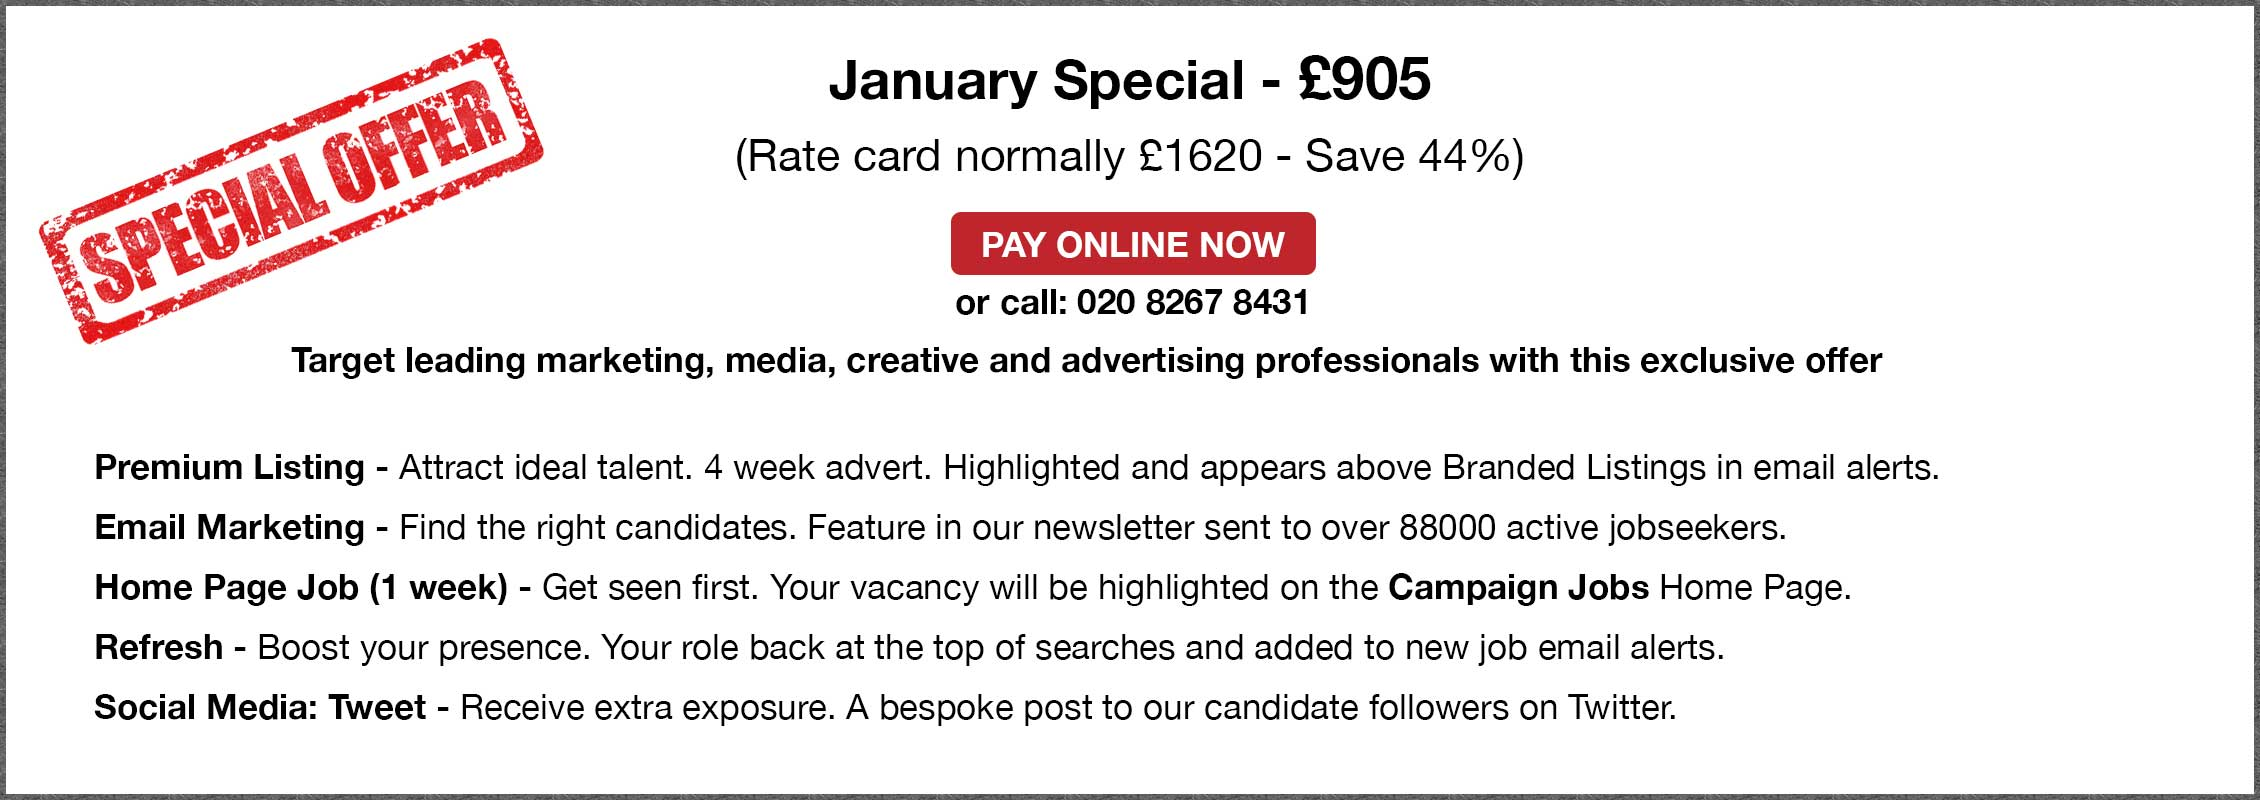 Special Offer. January Special - £905. (Rate card normally £1620 - Save 44%. PAY ONLINE NOW or call: 020 8267 8431. Target the finest marketing, media, creative and advertising professionals with this exclusive offer. Premium Listing - Attract ideal talent. 4 week advert. Highlighted and appears above Branded Listings in email alerts. Email Marketing - Find the right candidates. Feature in our newsletter sent to over 88000 active jobseekers. Home Page Job (1 week) - Get seen first. Your vacancy will be highlighted on the Campaign Jobs Home Page. Refresh - Boost your presence. Your role back at the top of searches and added to new job email alerts. Social Media: Tweet - Receive extra exposure. A bespoke post to our candidate followers on Twitter.